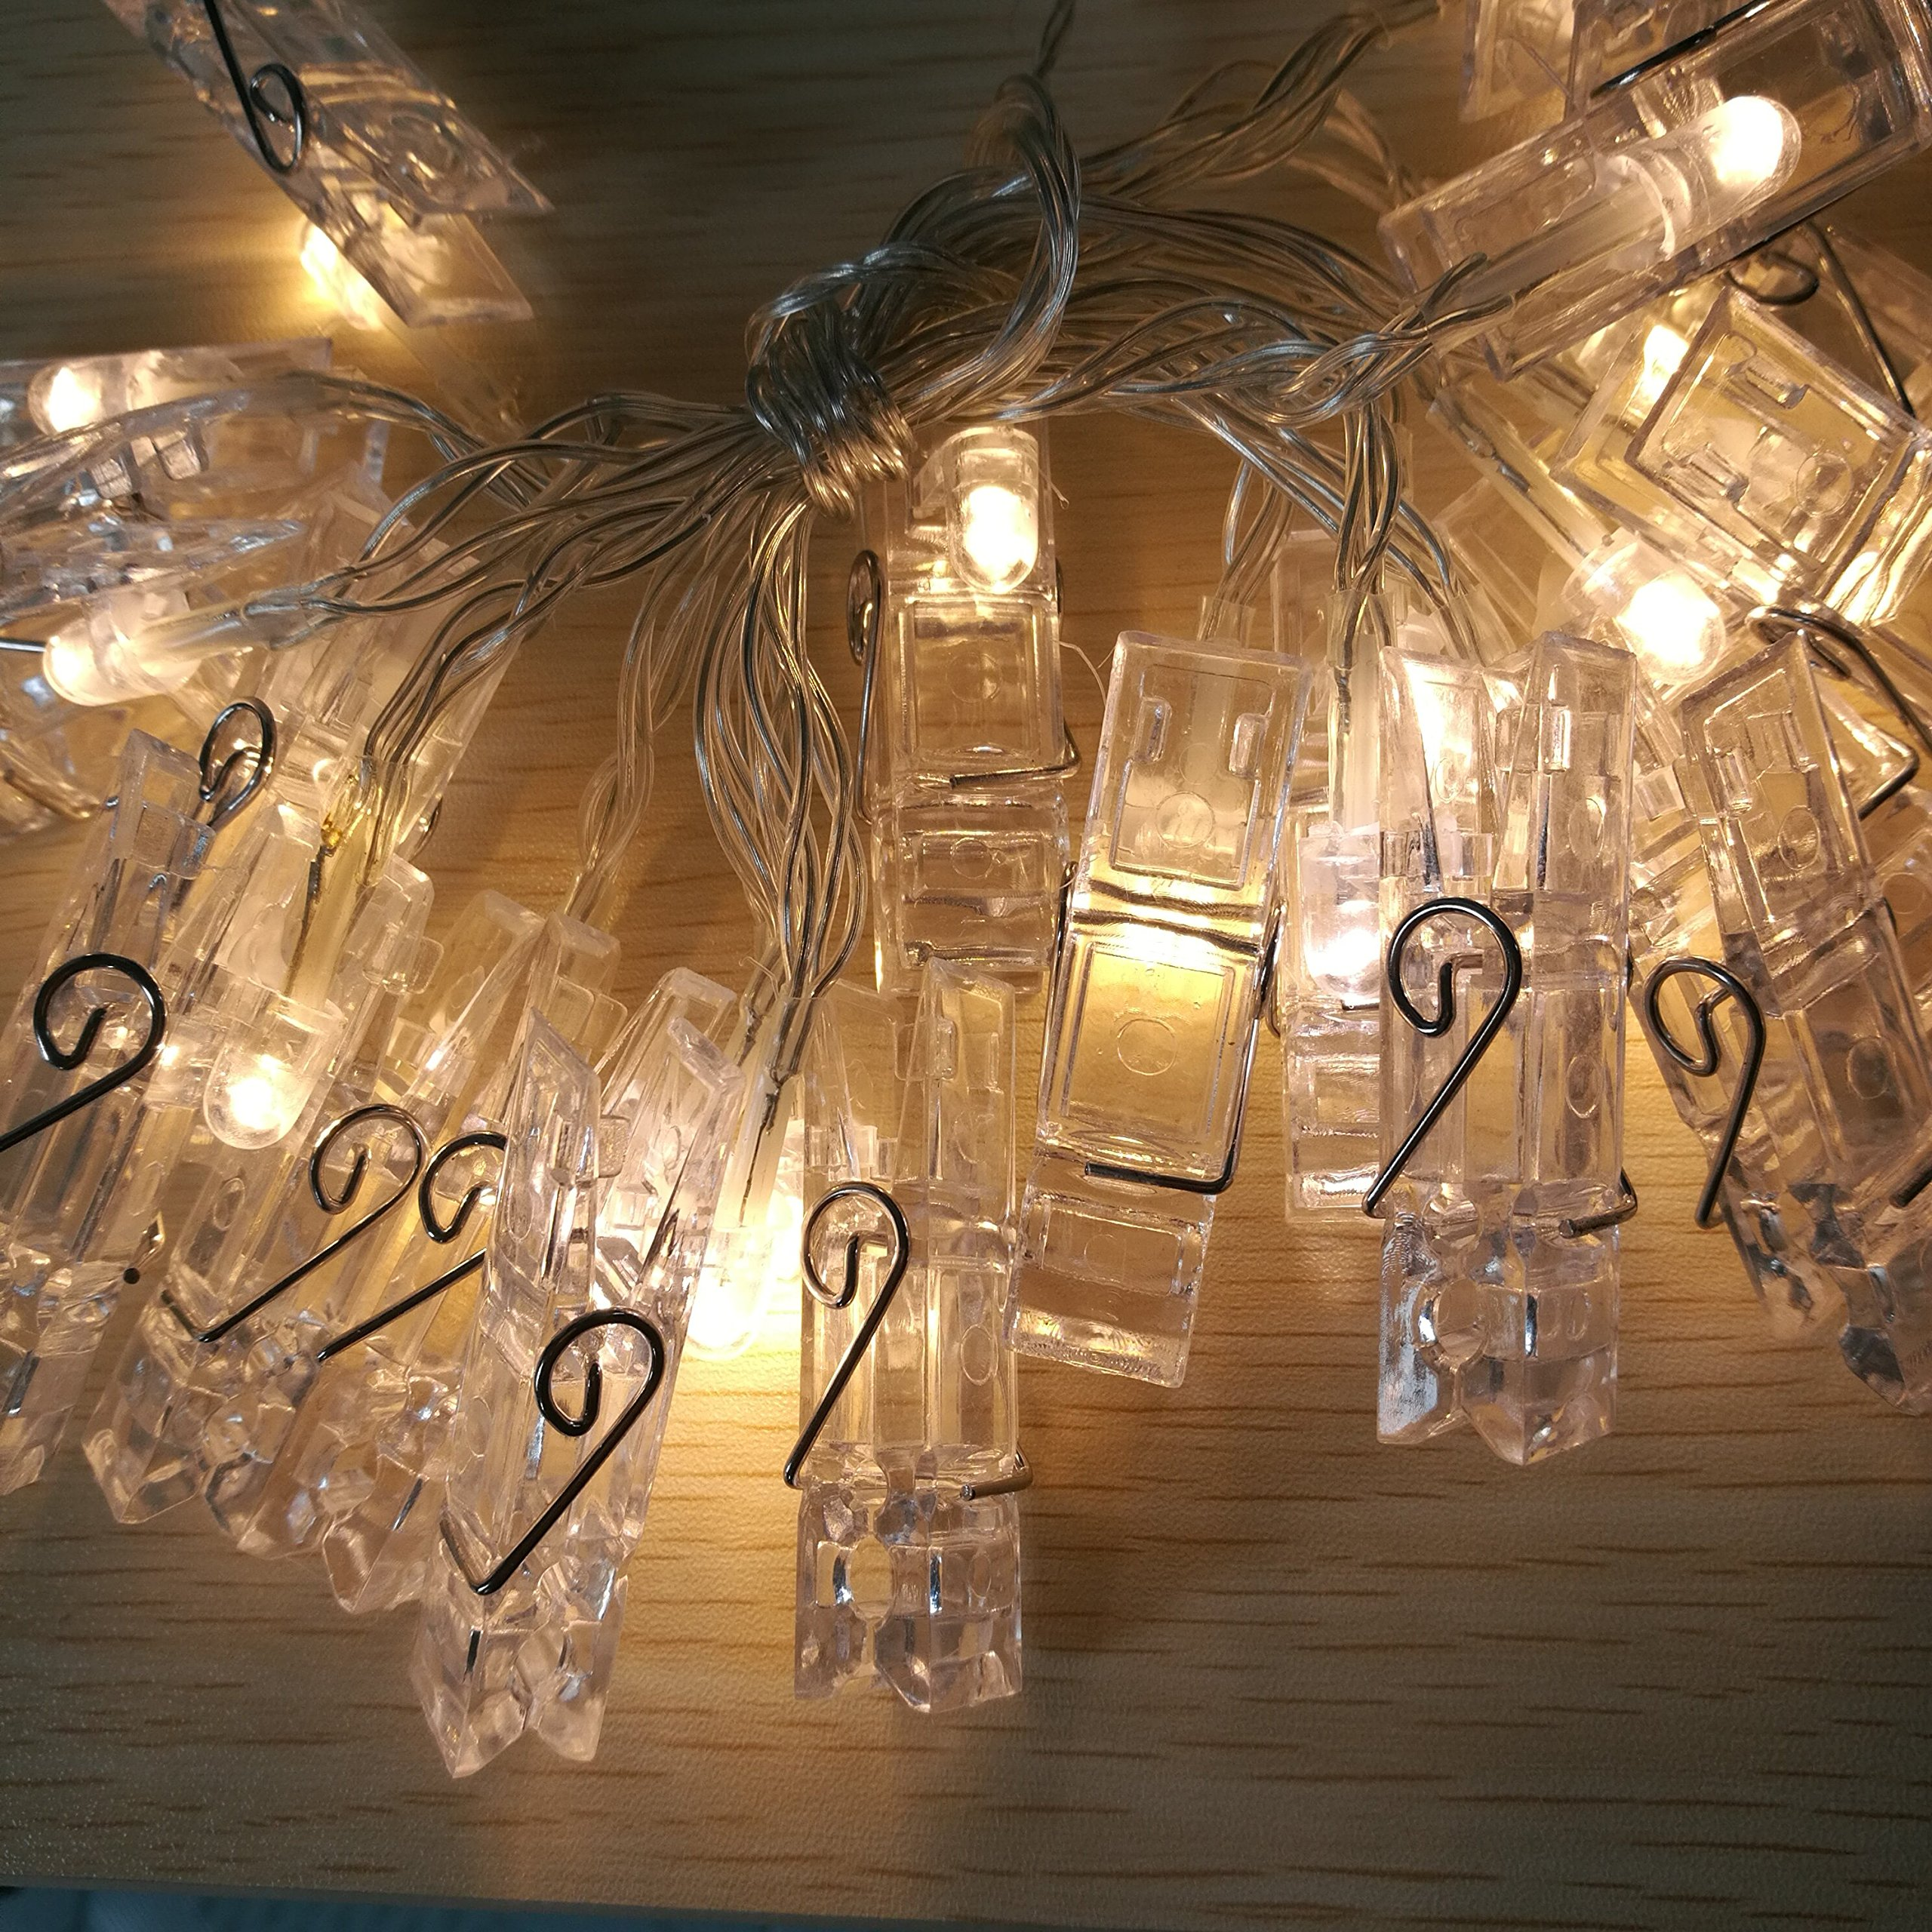 20 LED Clips Photo Clips String Lights, 6.5FT, Battery Powered, Home Decoration and Wall Decoration, Hanging Photos, Artworks, Cards(Warm White, 20 Led Clips)